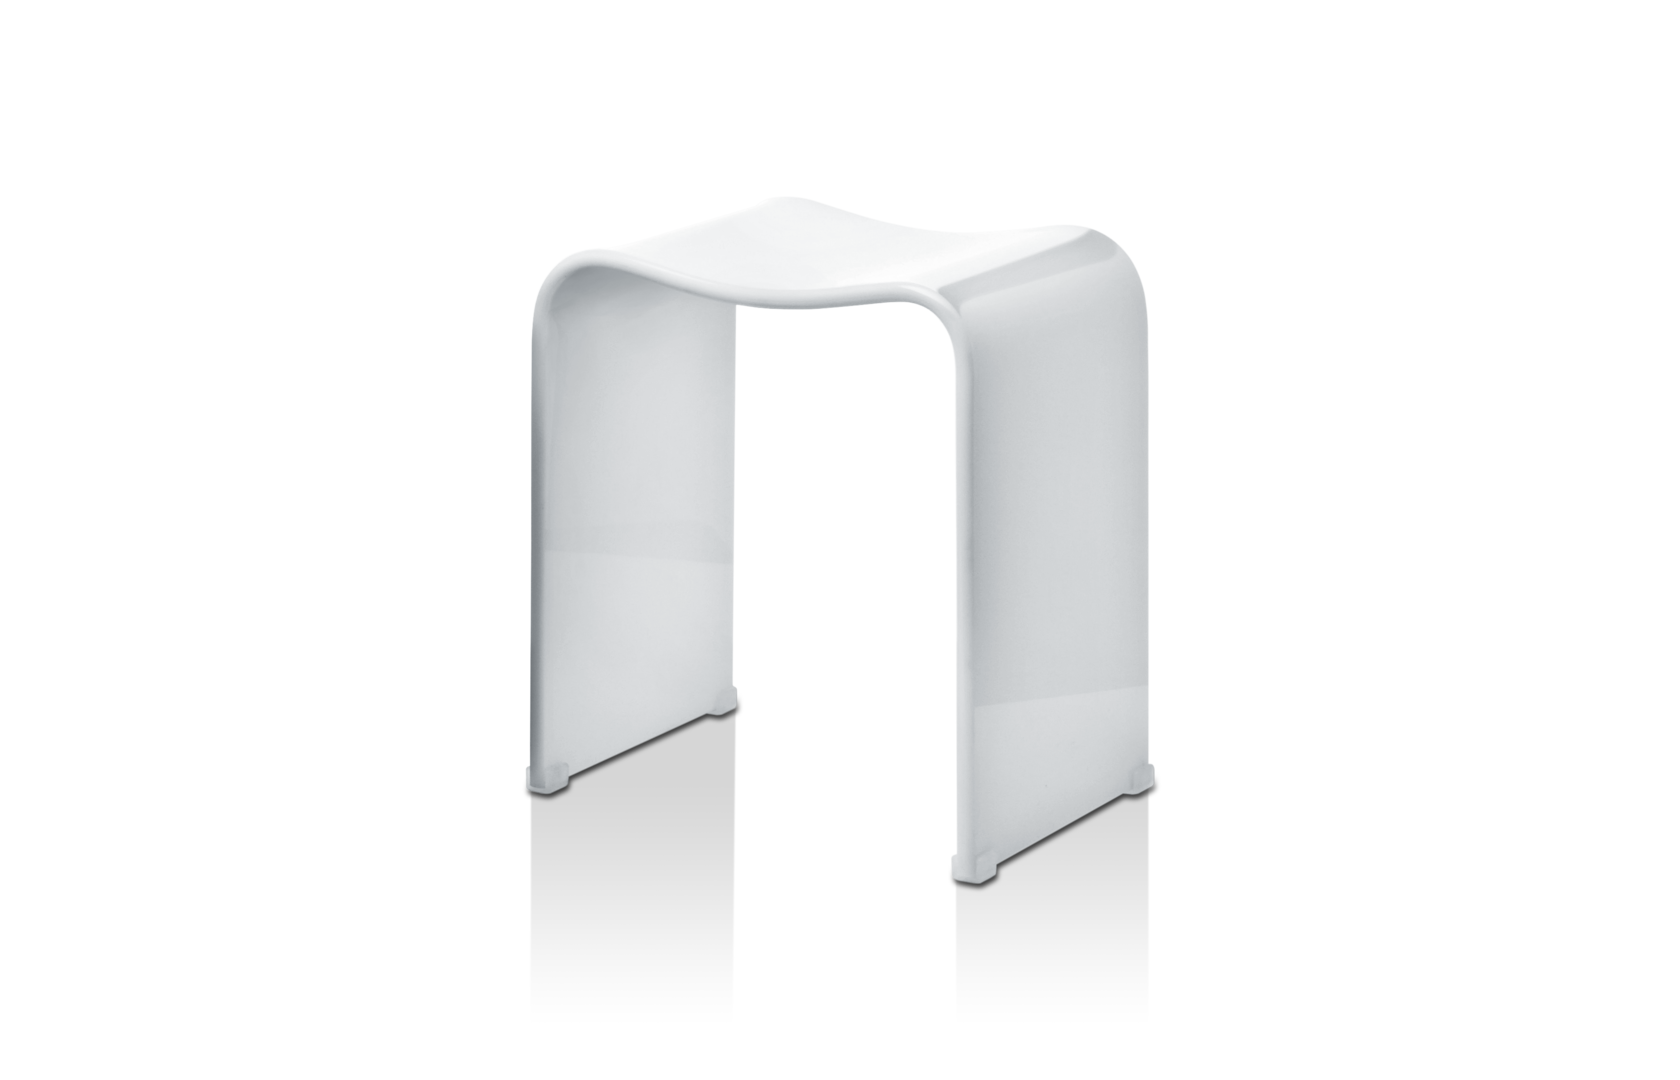 Stool For The Bathroom Dw 80 Decor Walther